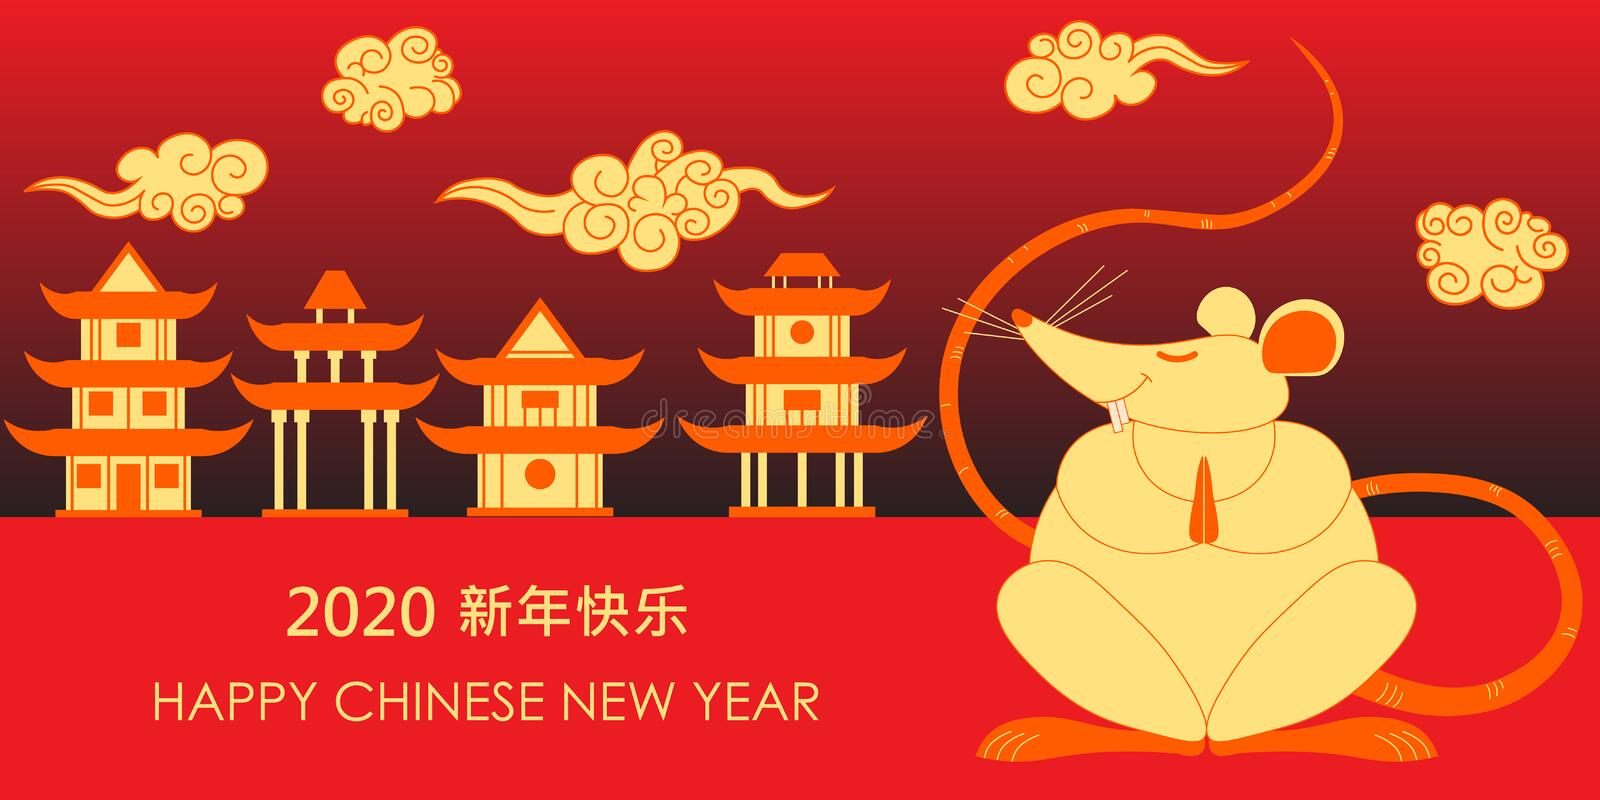 Golden rat on houses background and text Happy Chinese New Year vector illustration